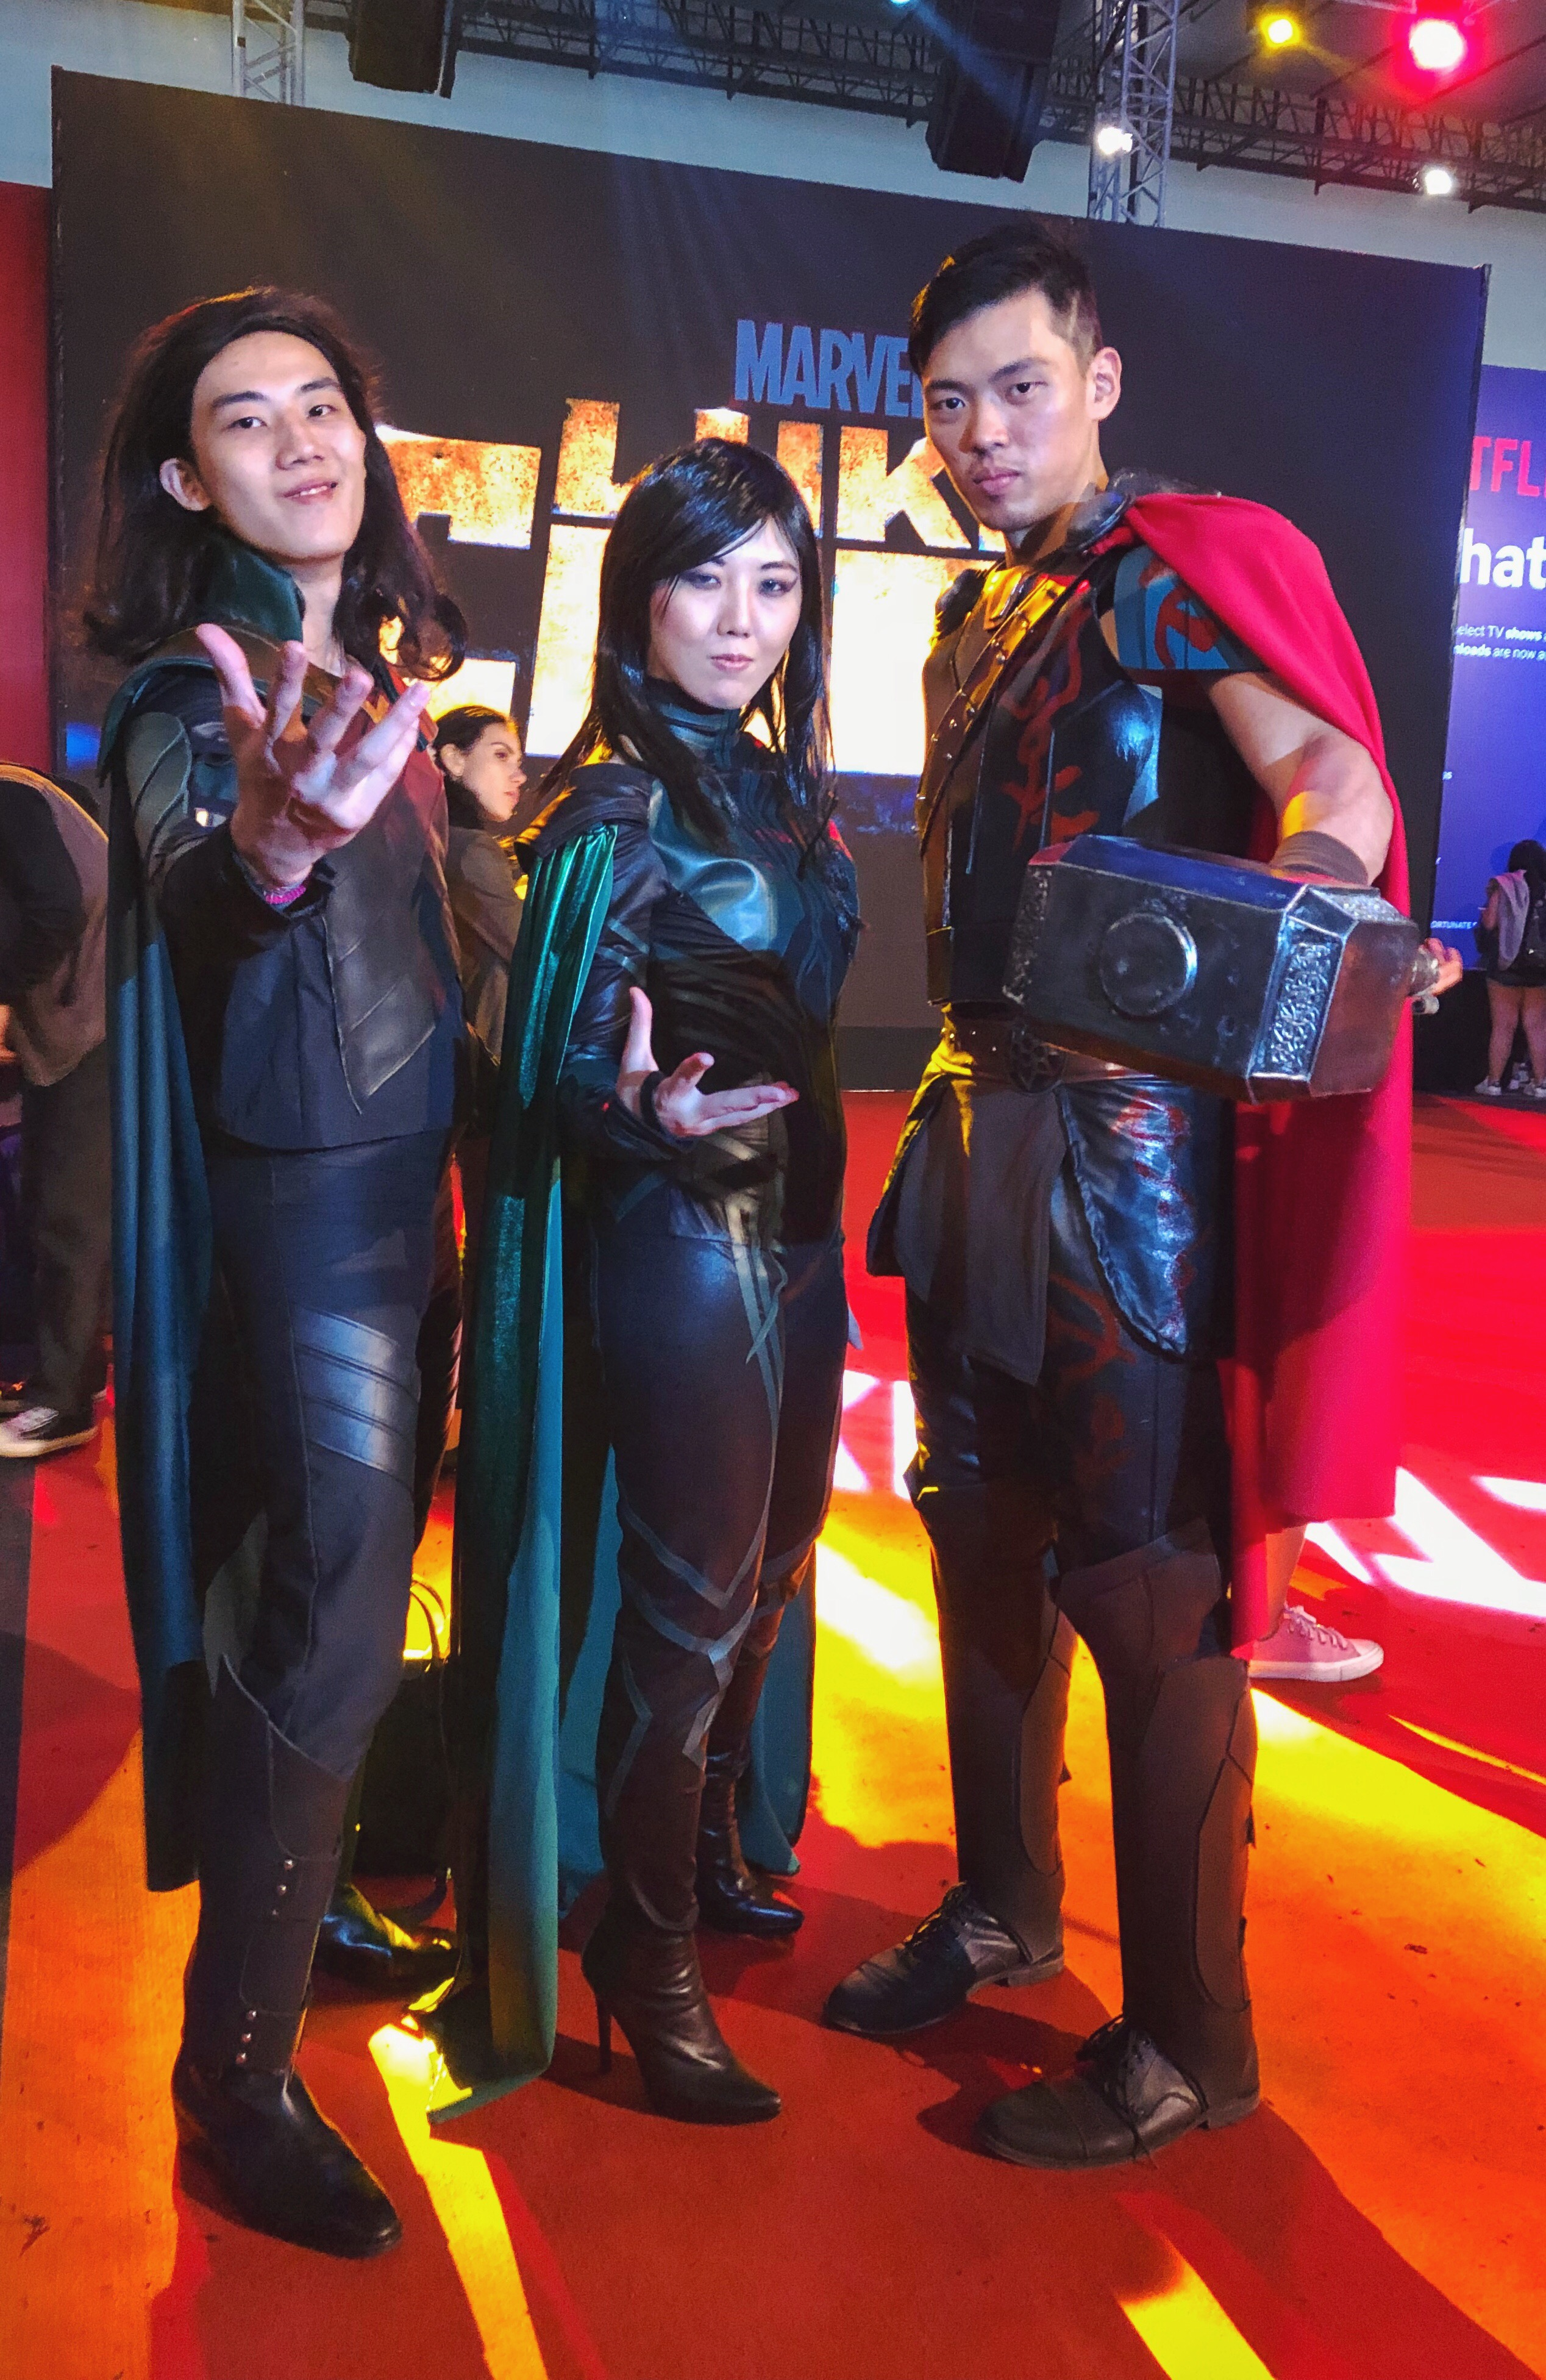 Loki, Hela and Thor